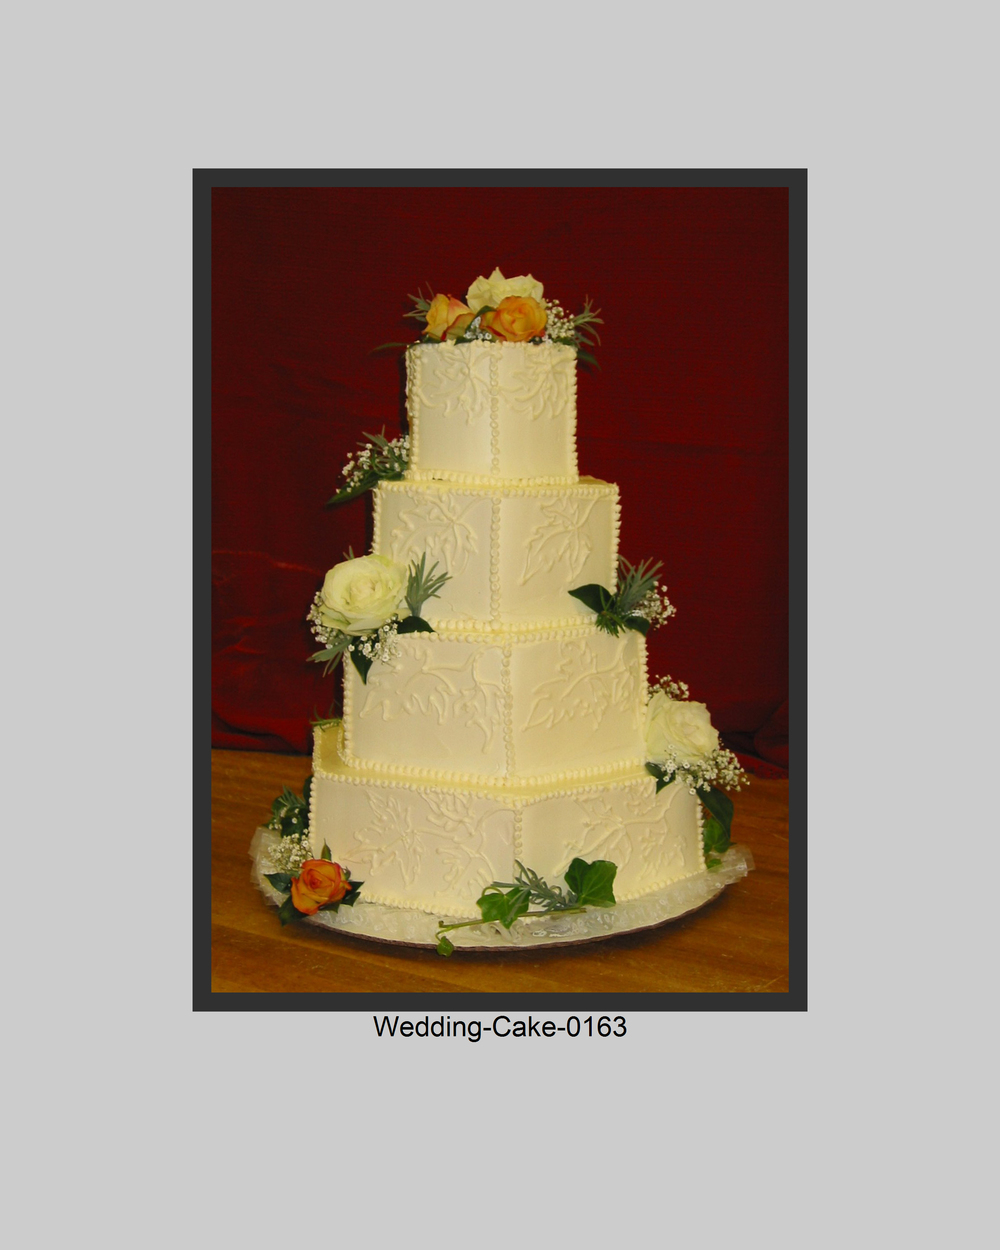 Wedding-Cake-Prints-0163.jpg